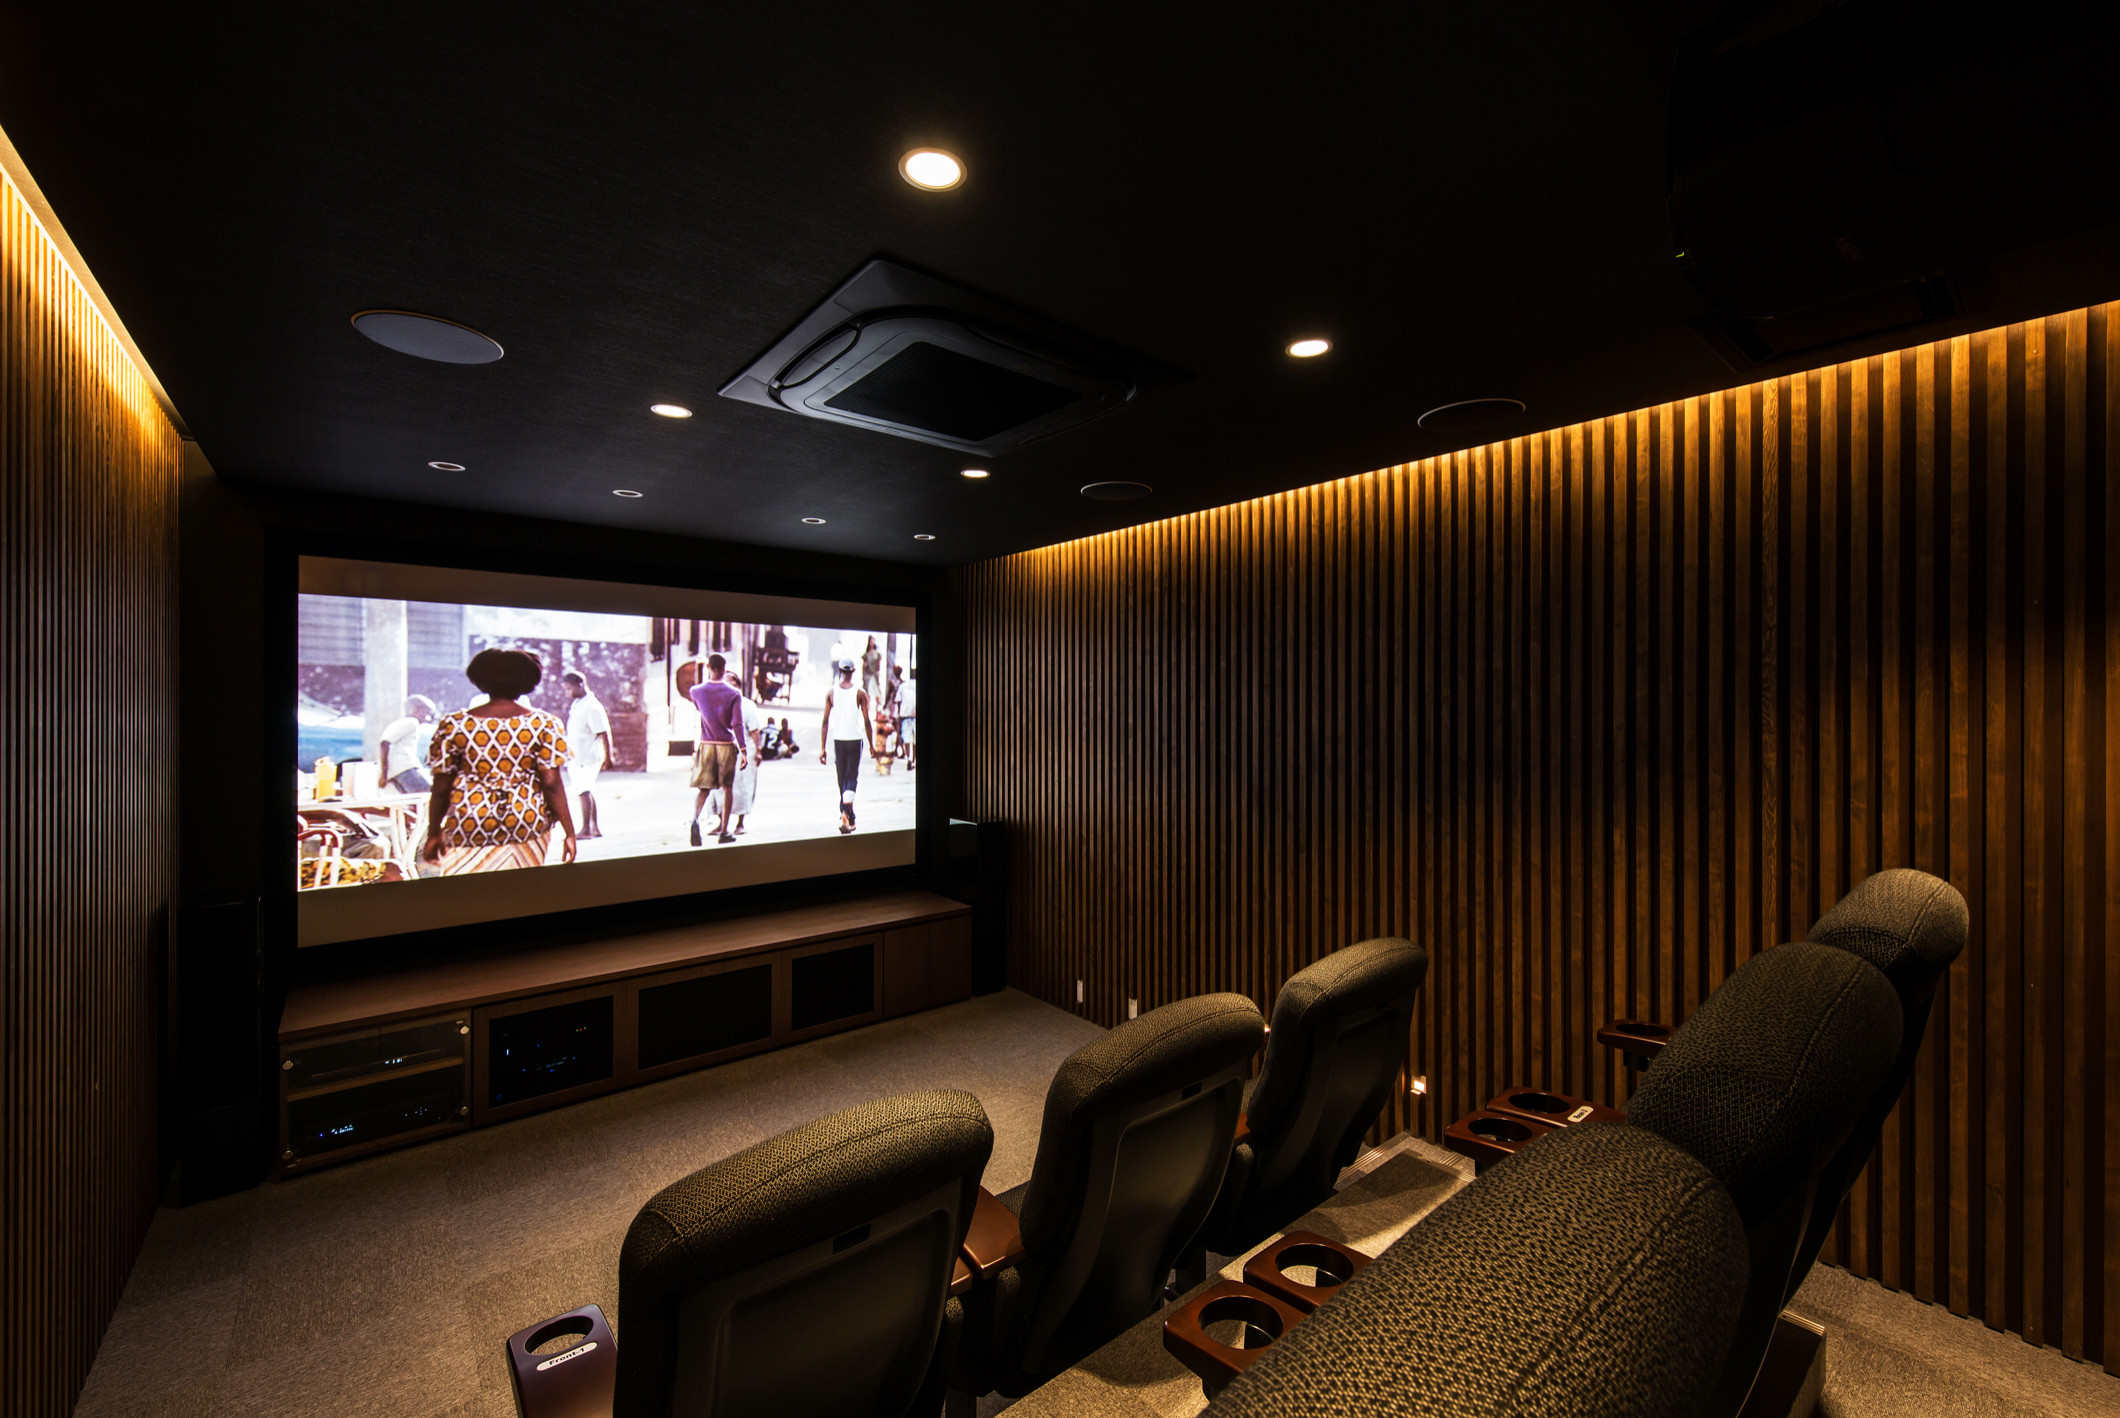 75 Beautiful Modern Home Theater Pictures Ideas December 2020 Houzz